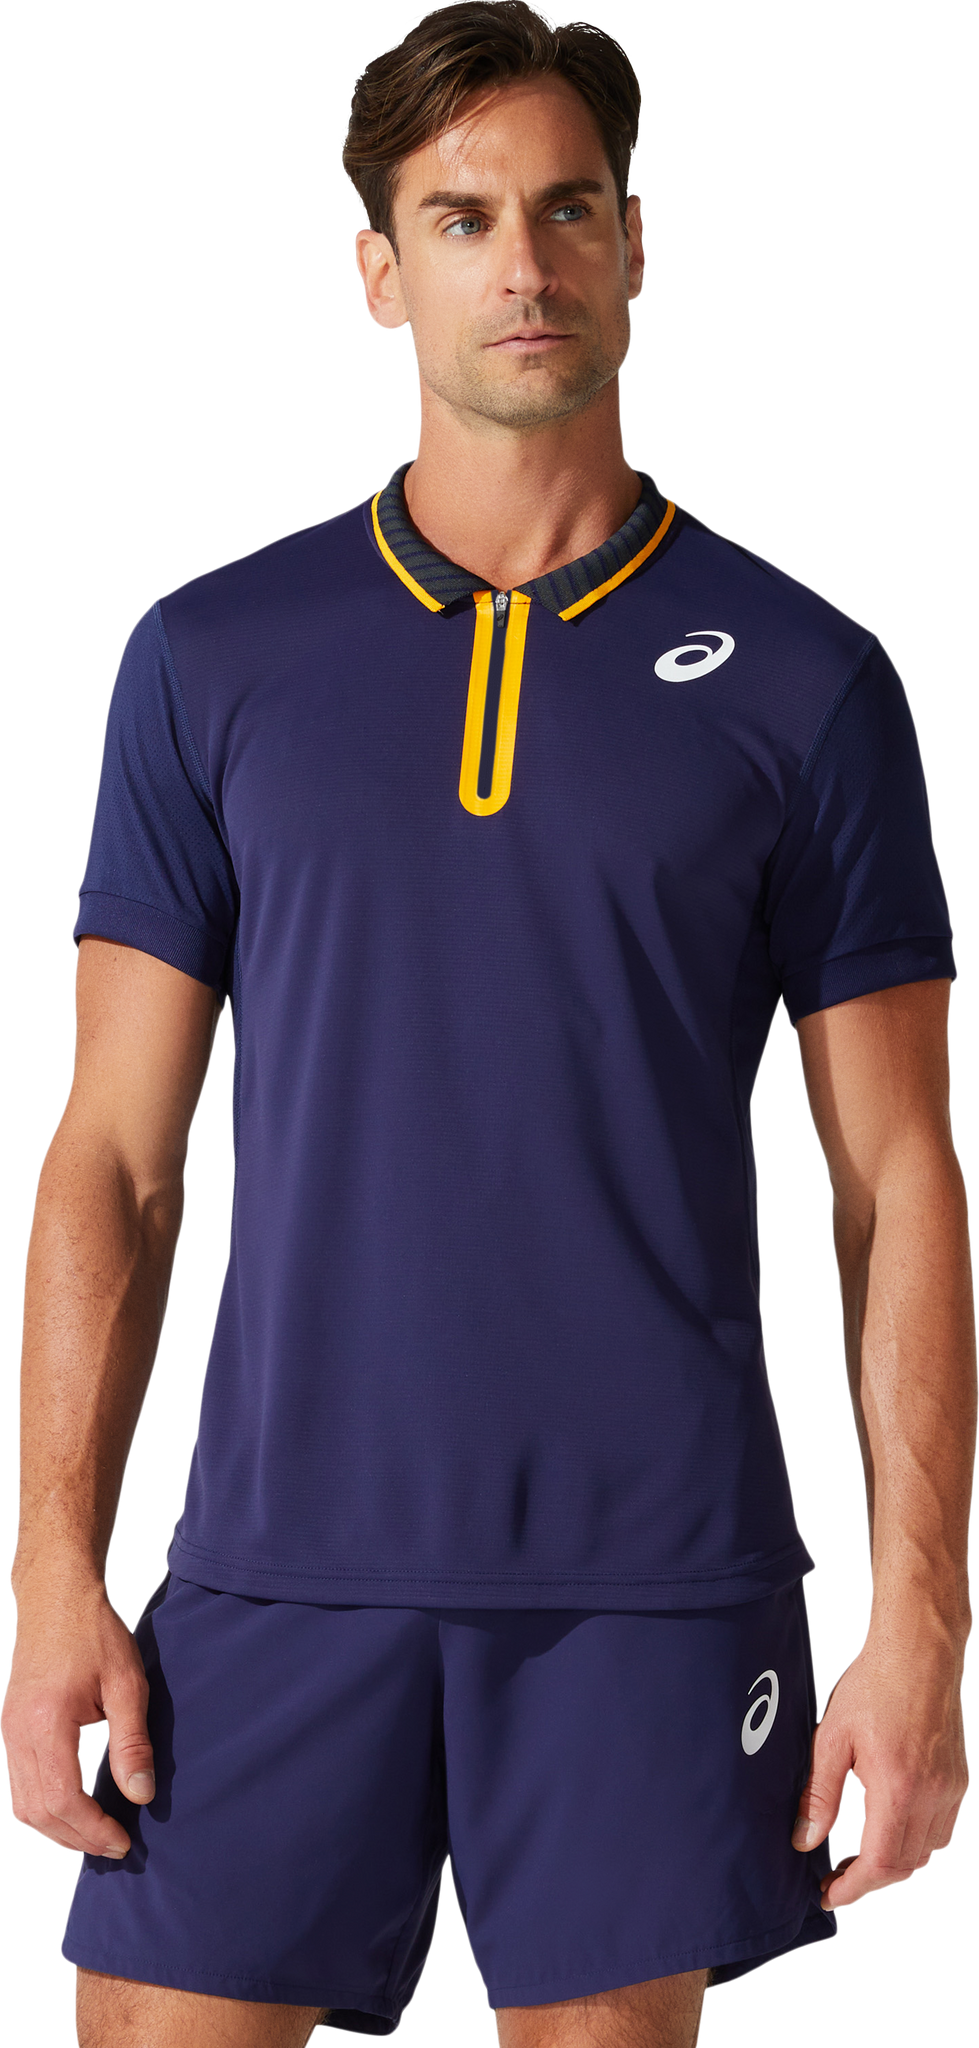 Asics Match Polo Shirt